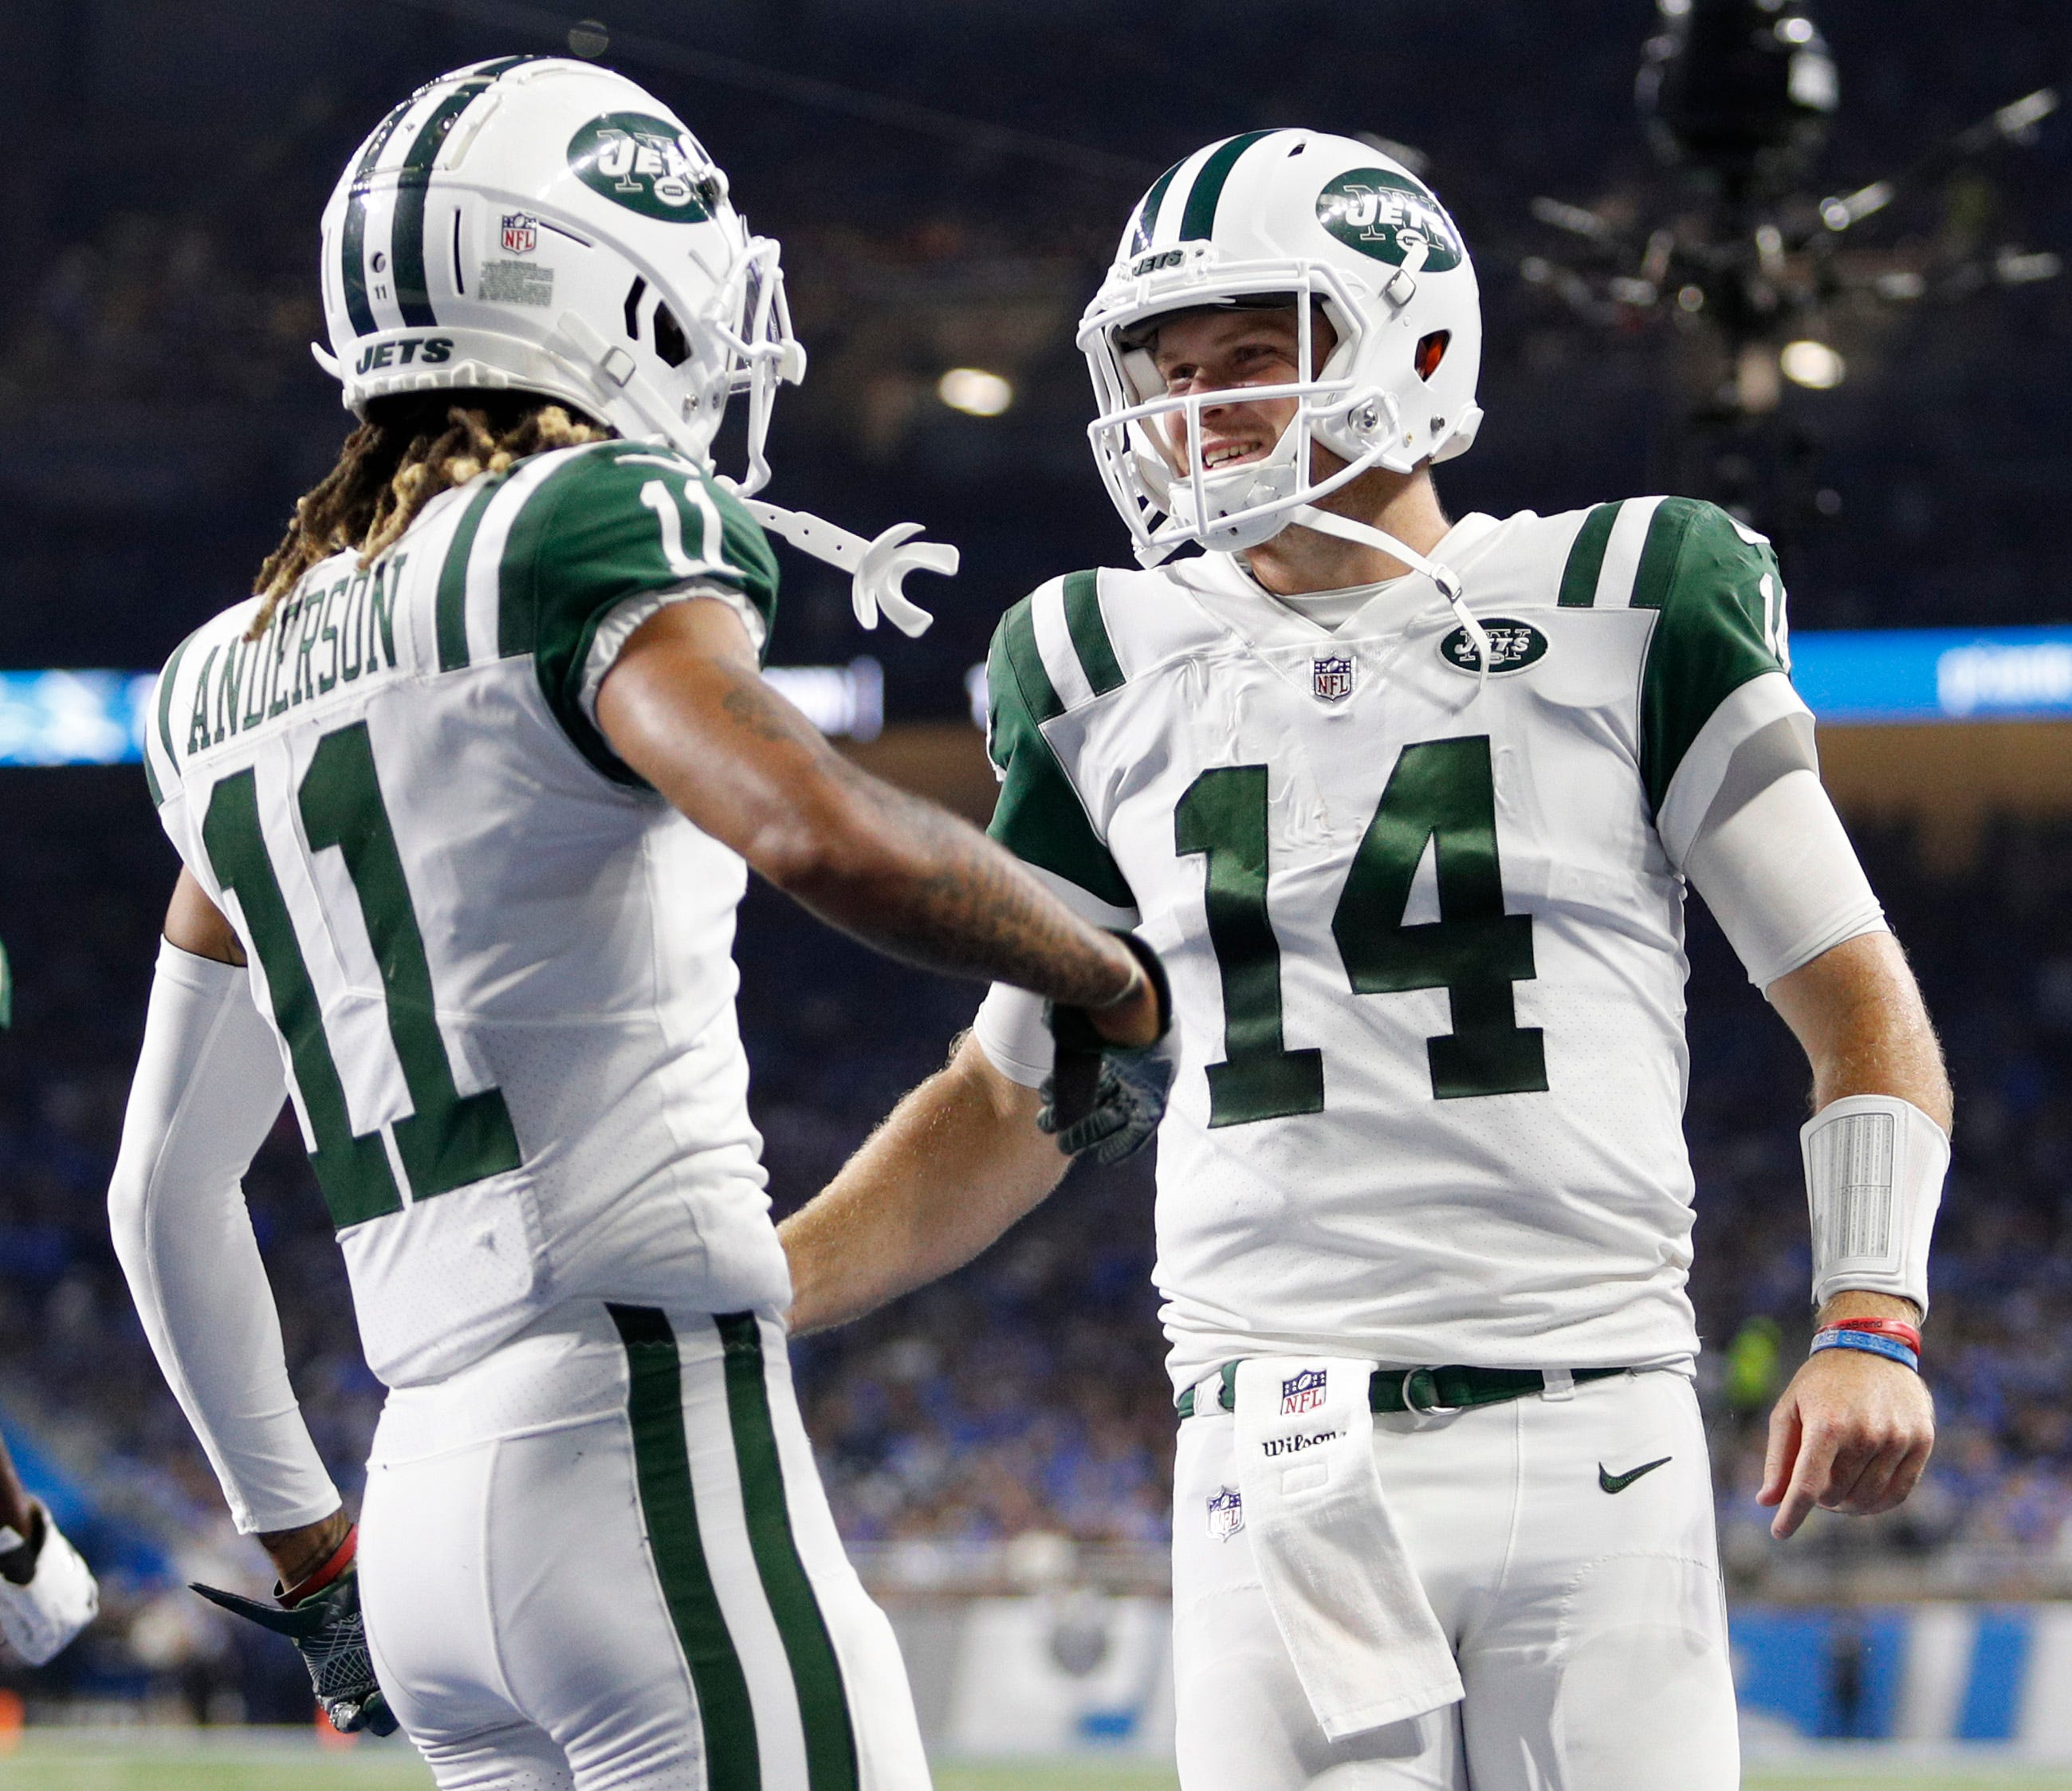 Sam Darnold rebounds from ignominious start as Jets rout Lions